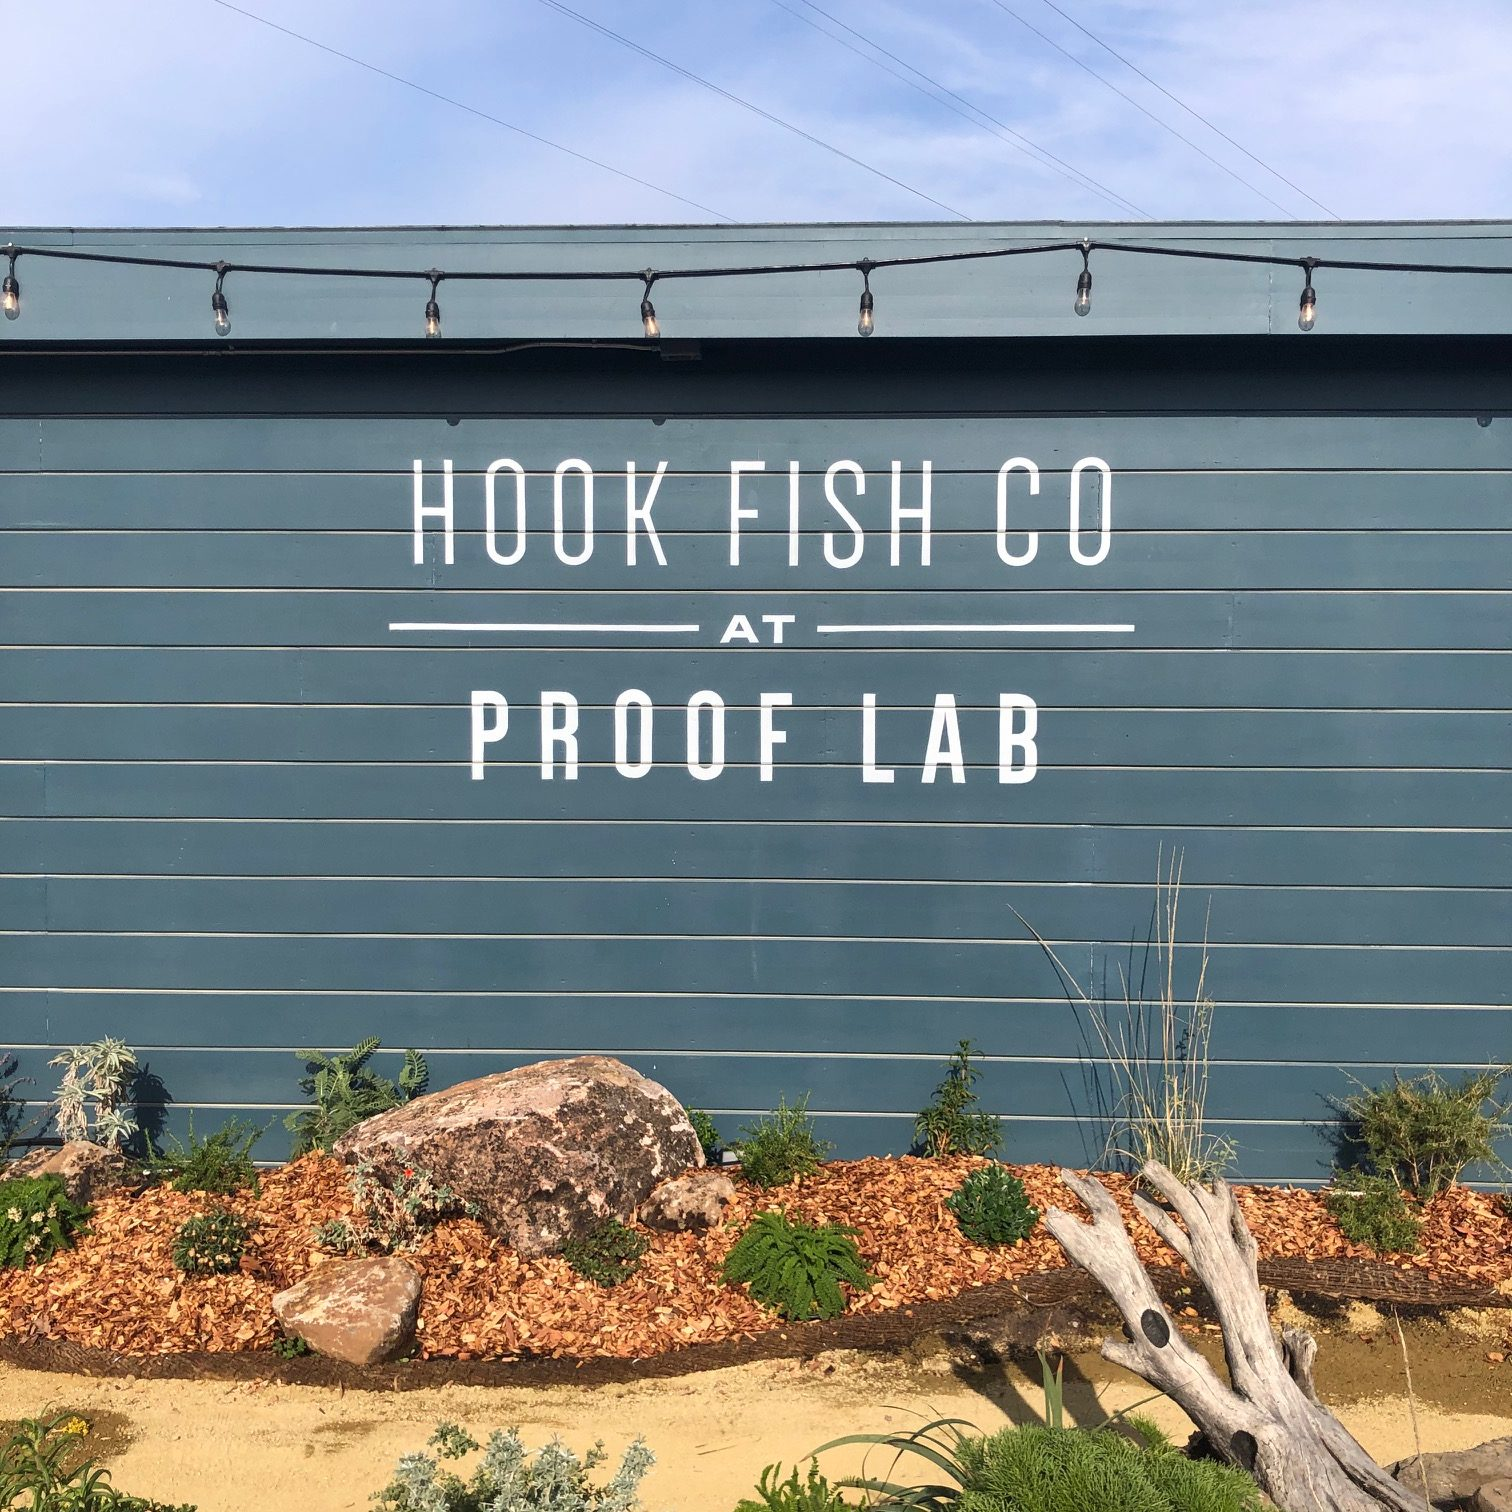 Hook Fish Co. at Proof Lab